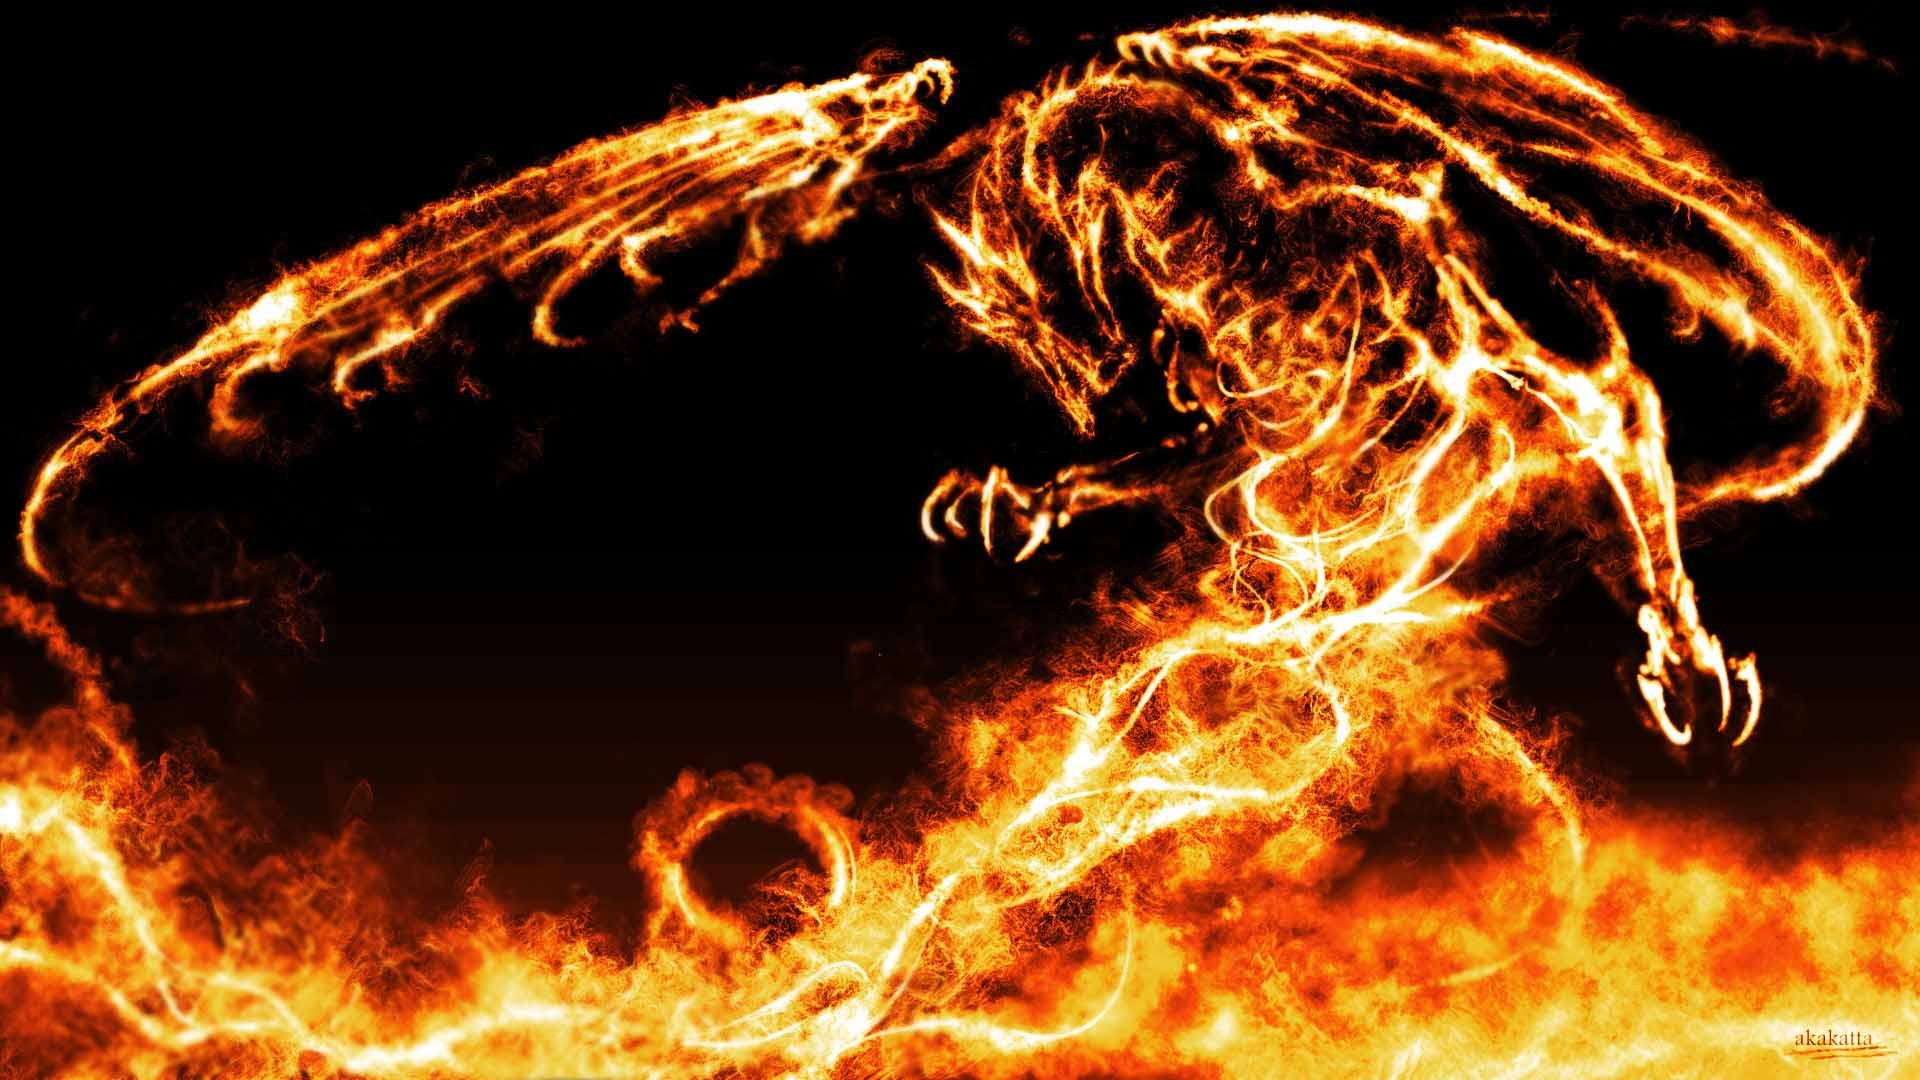 Dragon wallpaper hd download free high resolution backgrounds wallpapers voltagebd Gallery